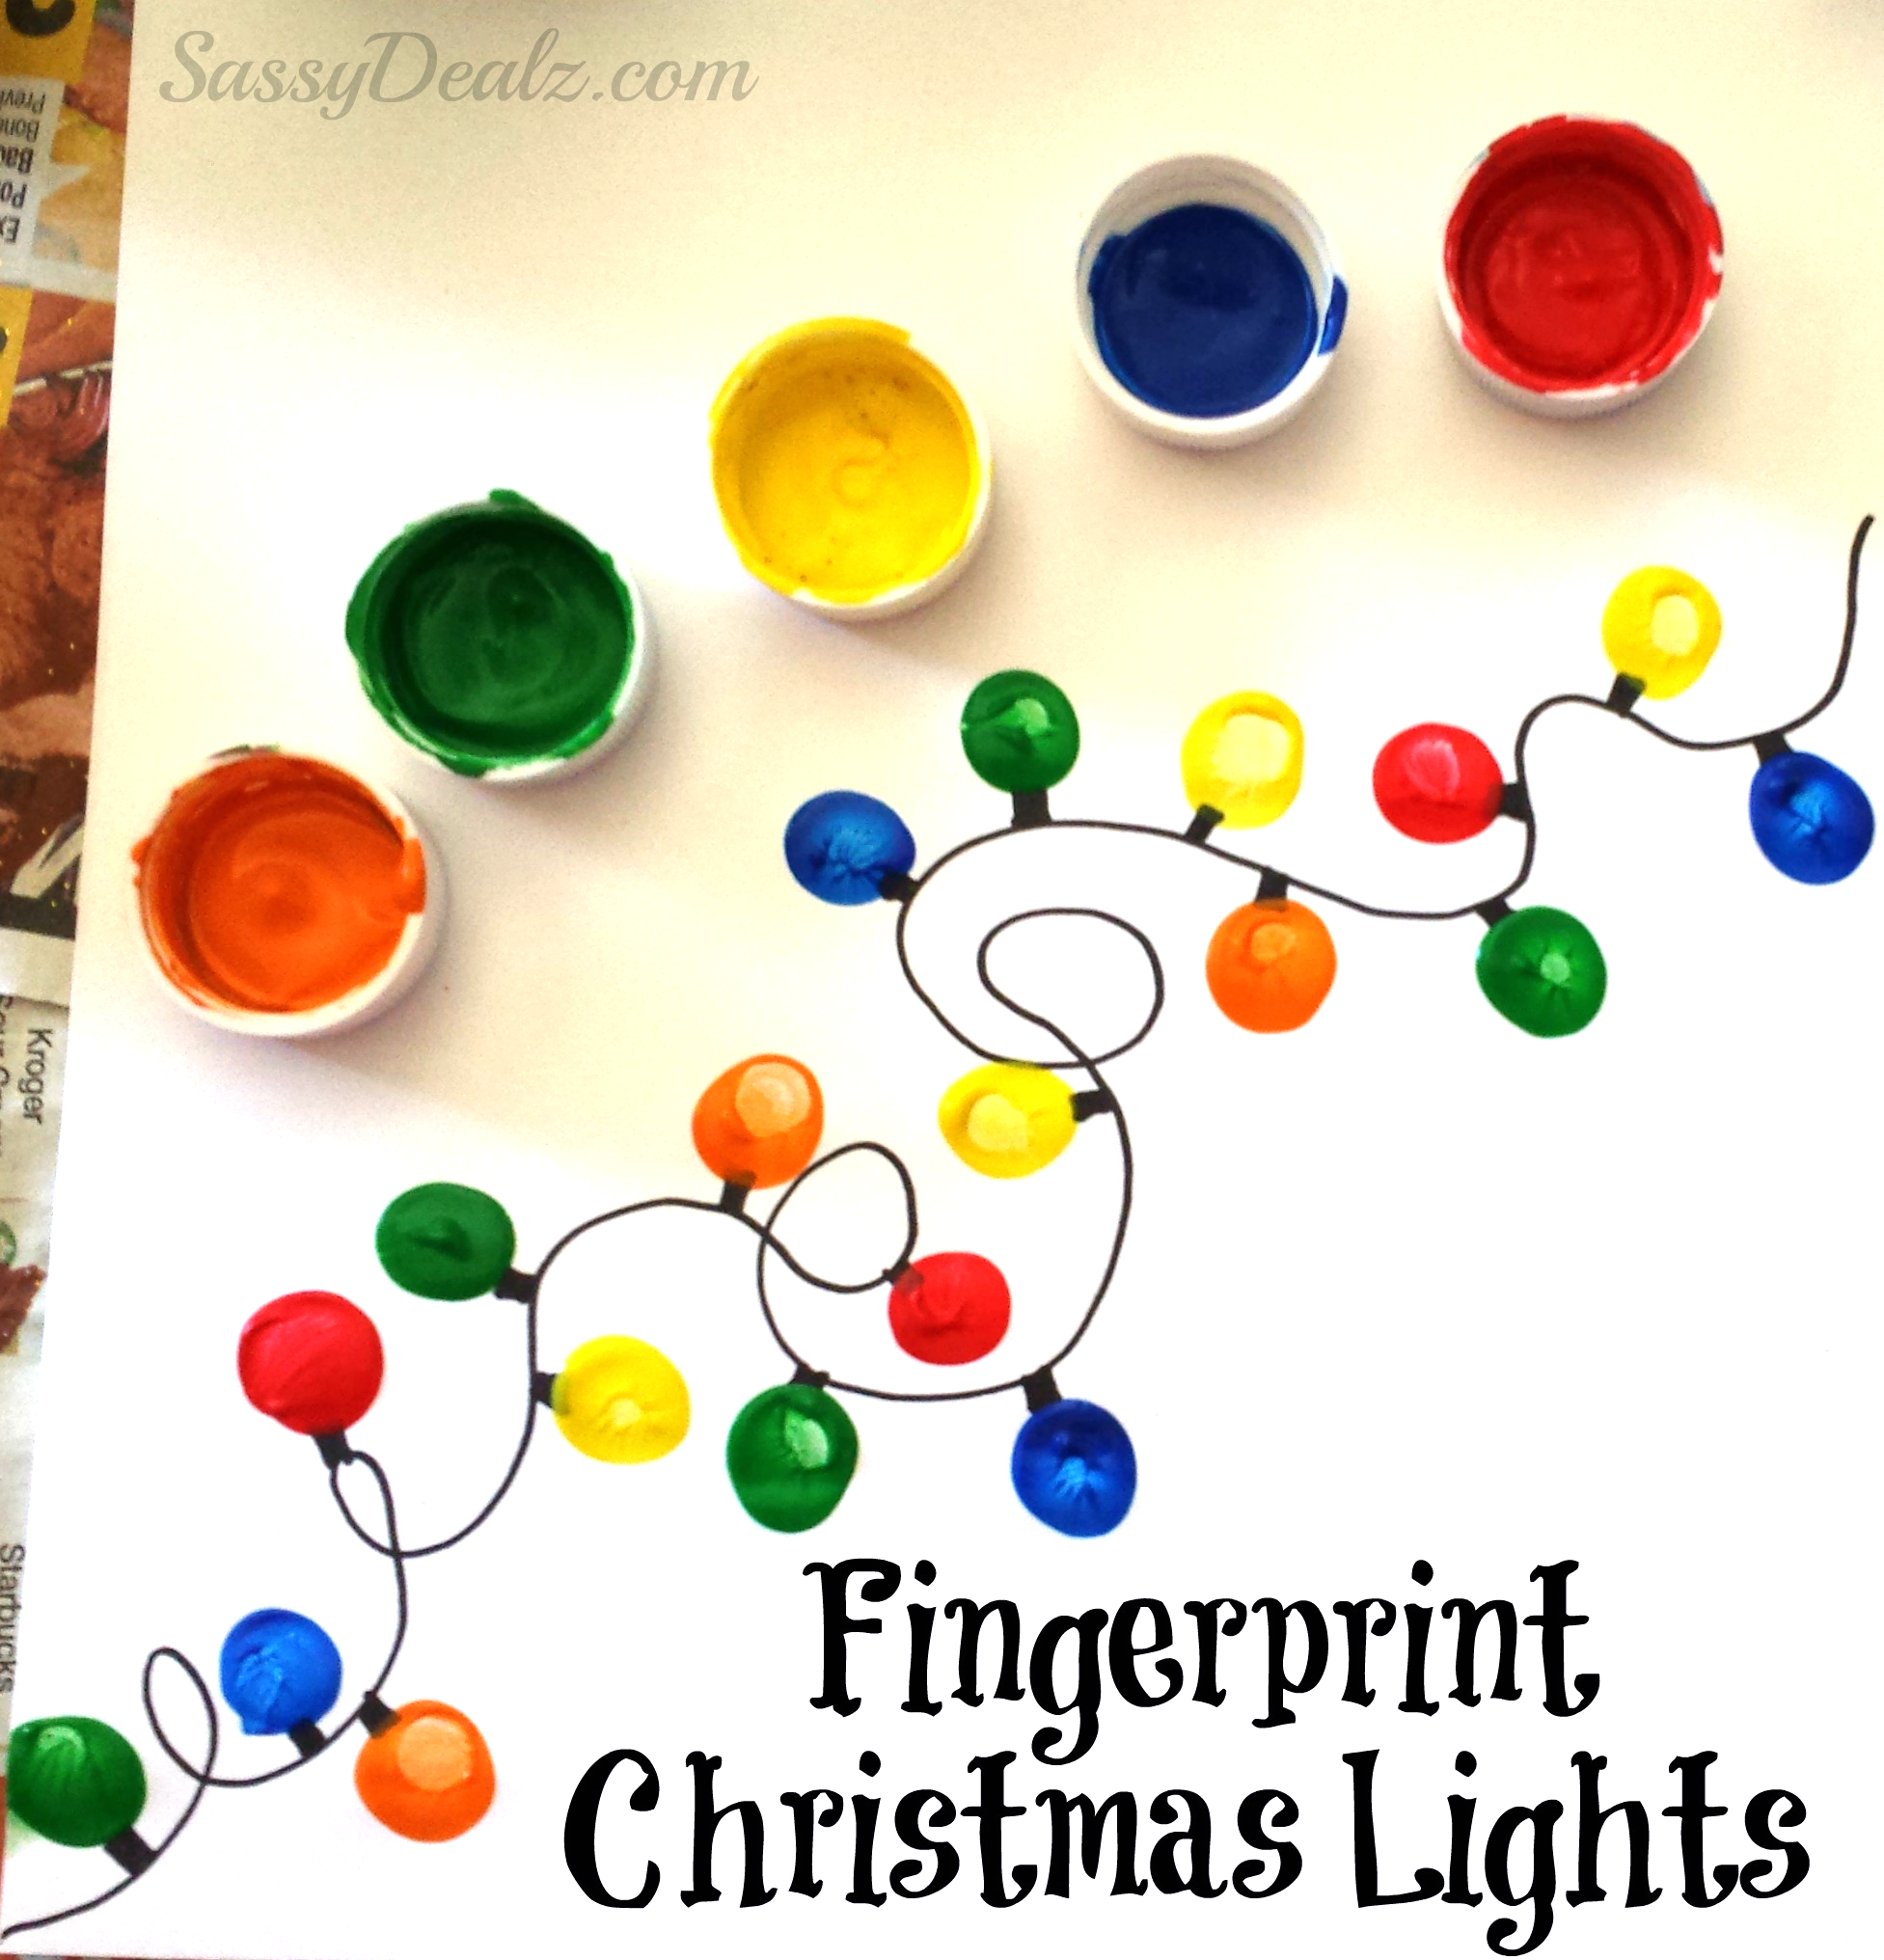 Fingerprint Christmas Light Craft For Kids It would be cool to do